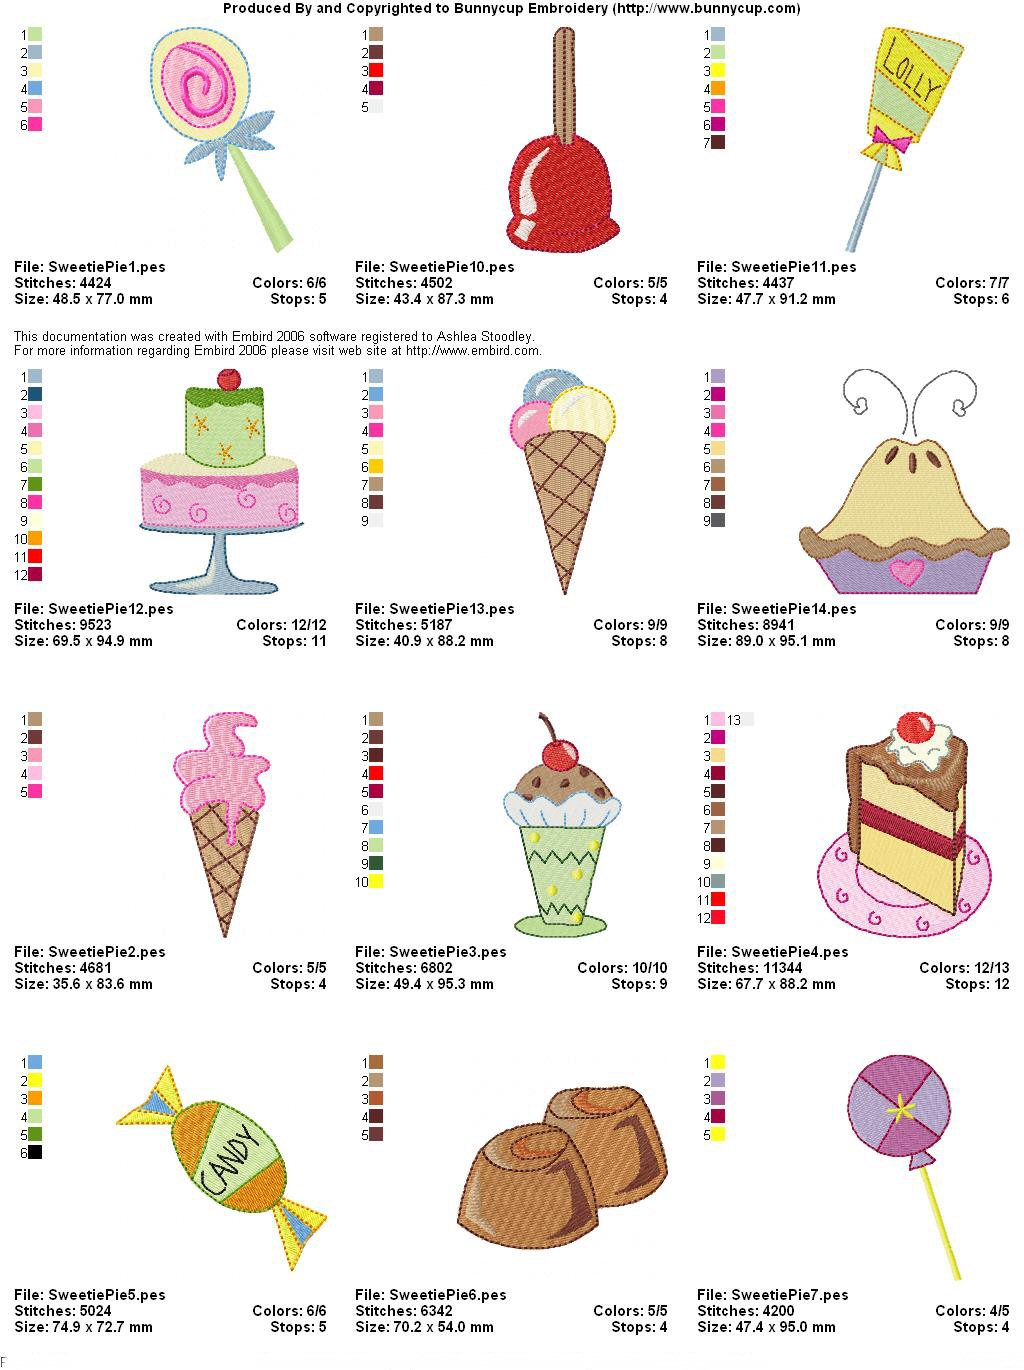 Sweetie Pie Embroidery Designs - Bunnycup Embroidery